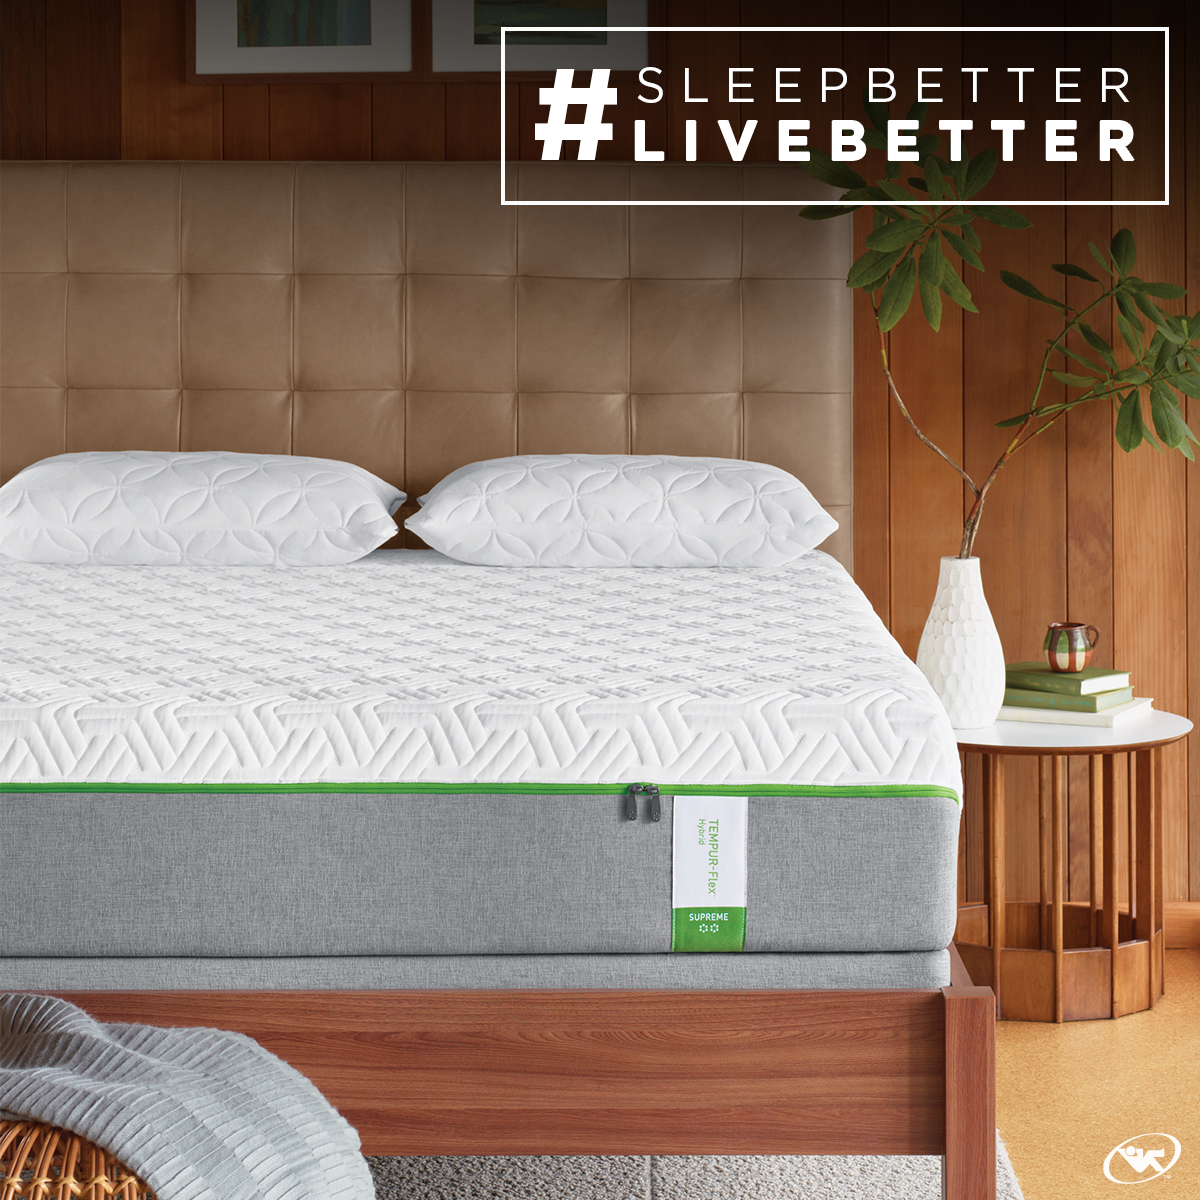 sleepbetterlivebetter 48 month financing receive up to 300 with